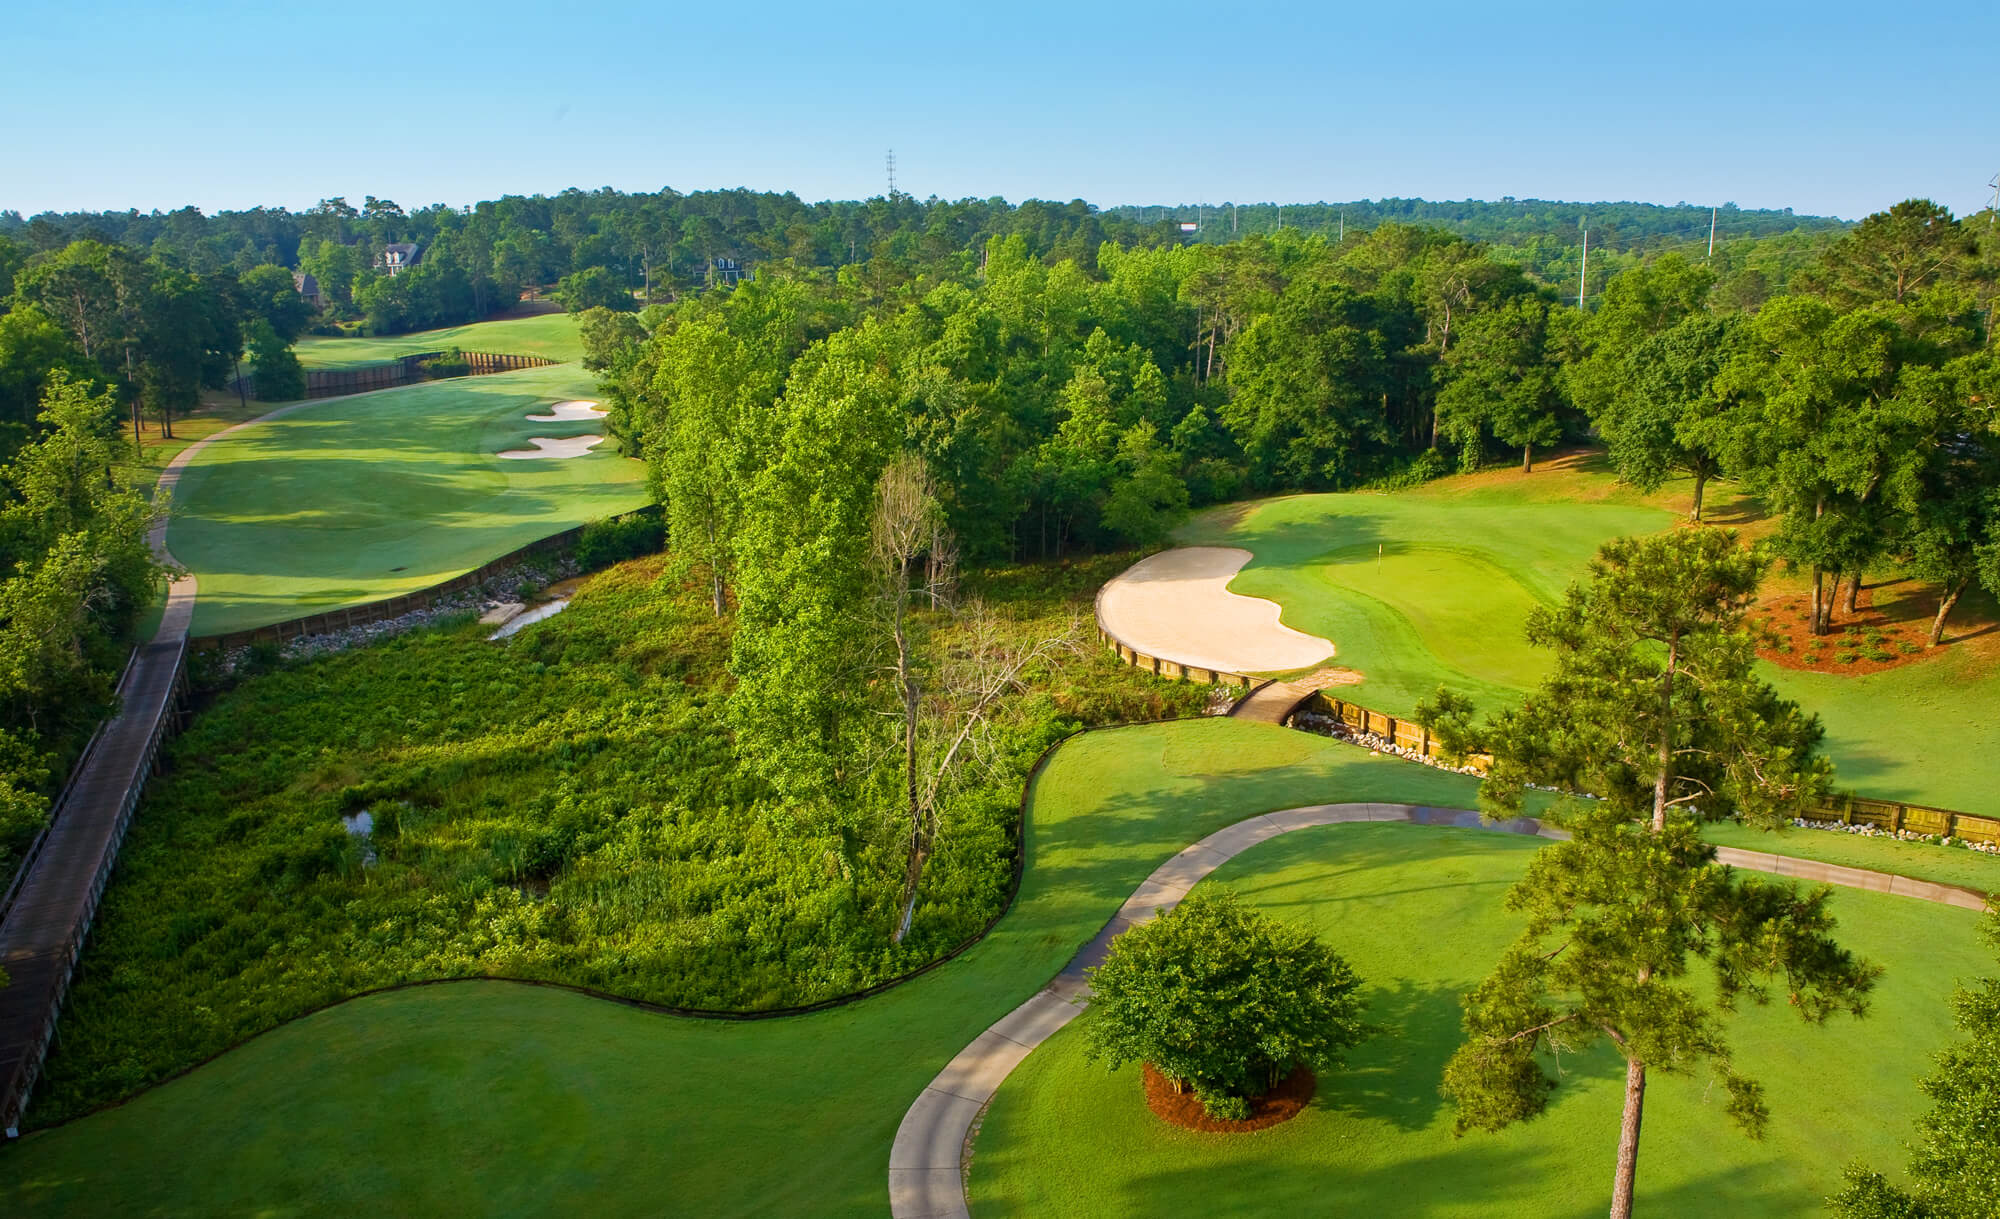 Overview of golf course named Rock Creek Golf Club